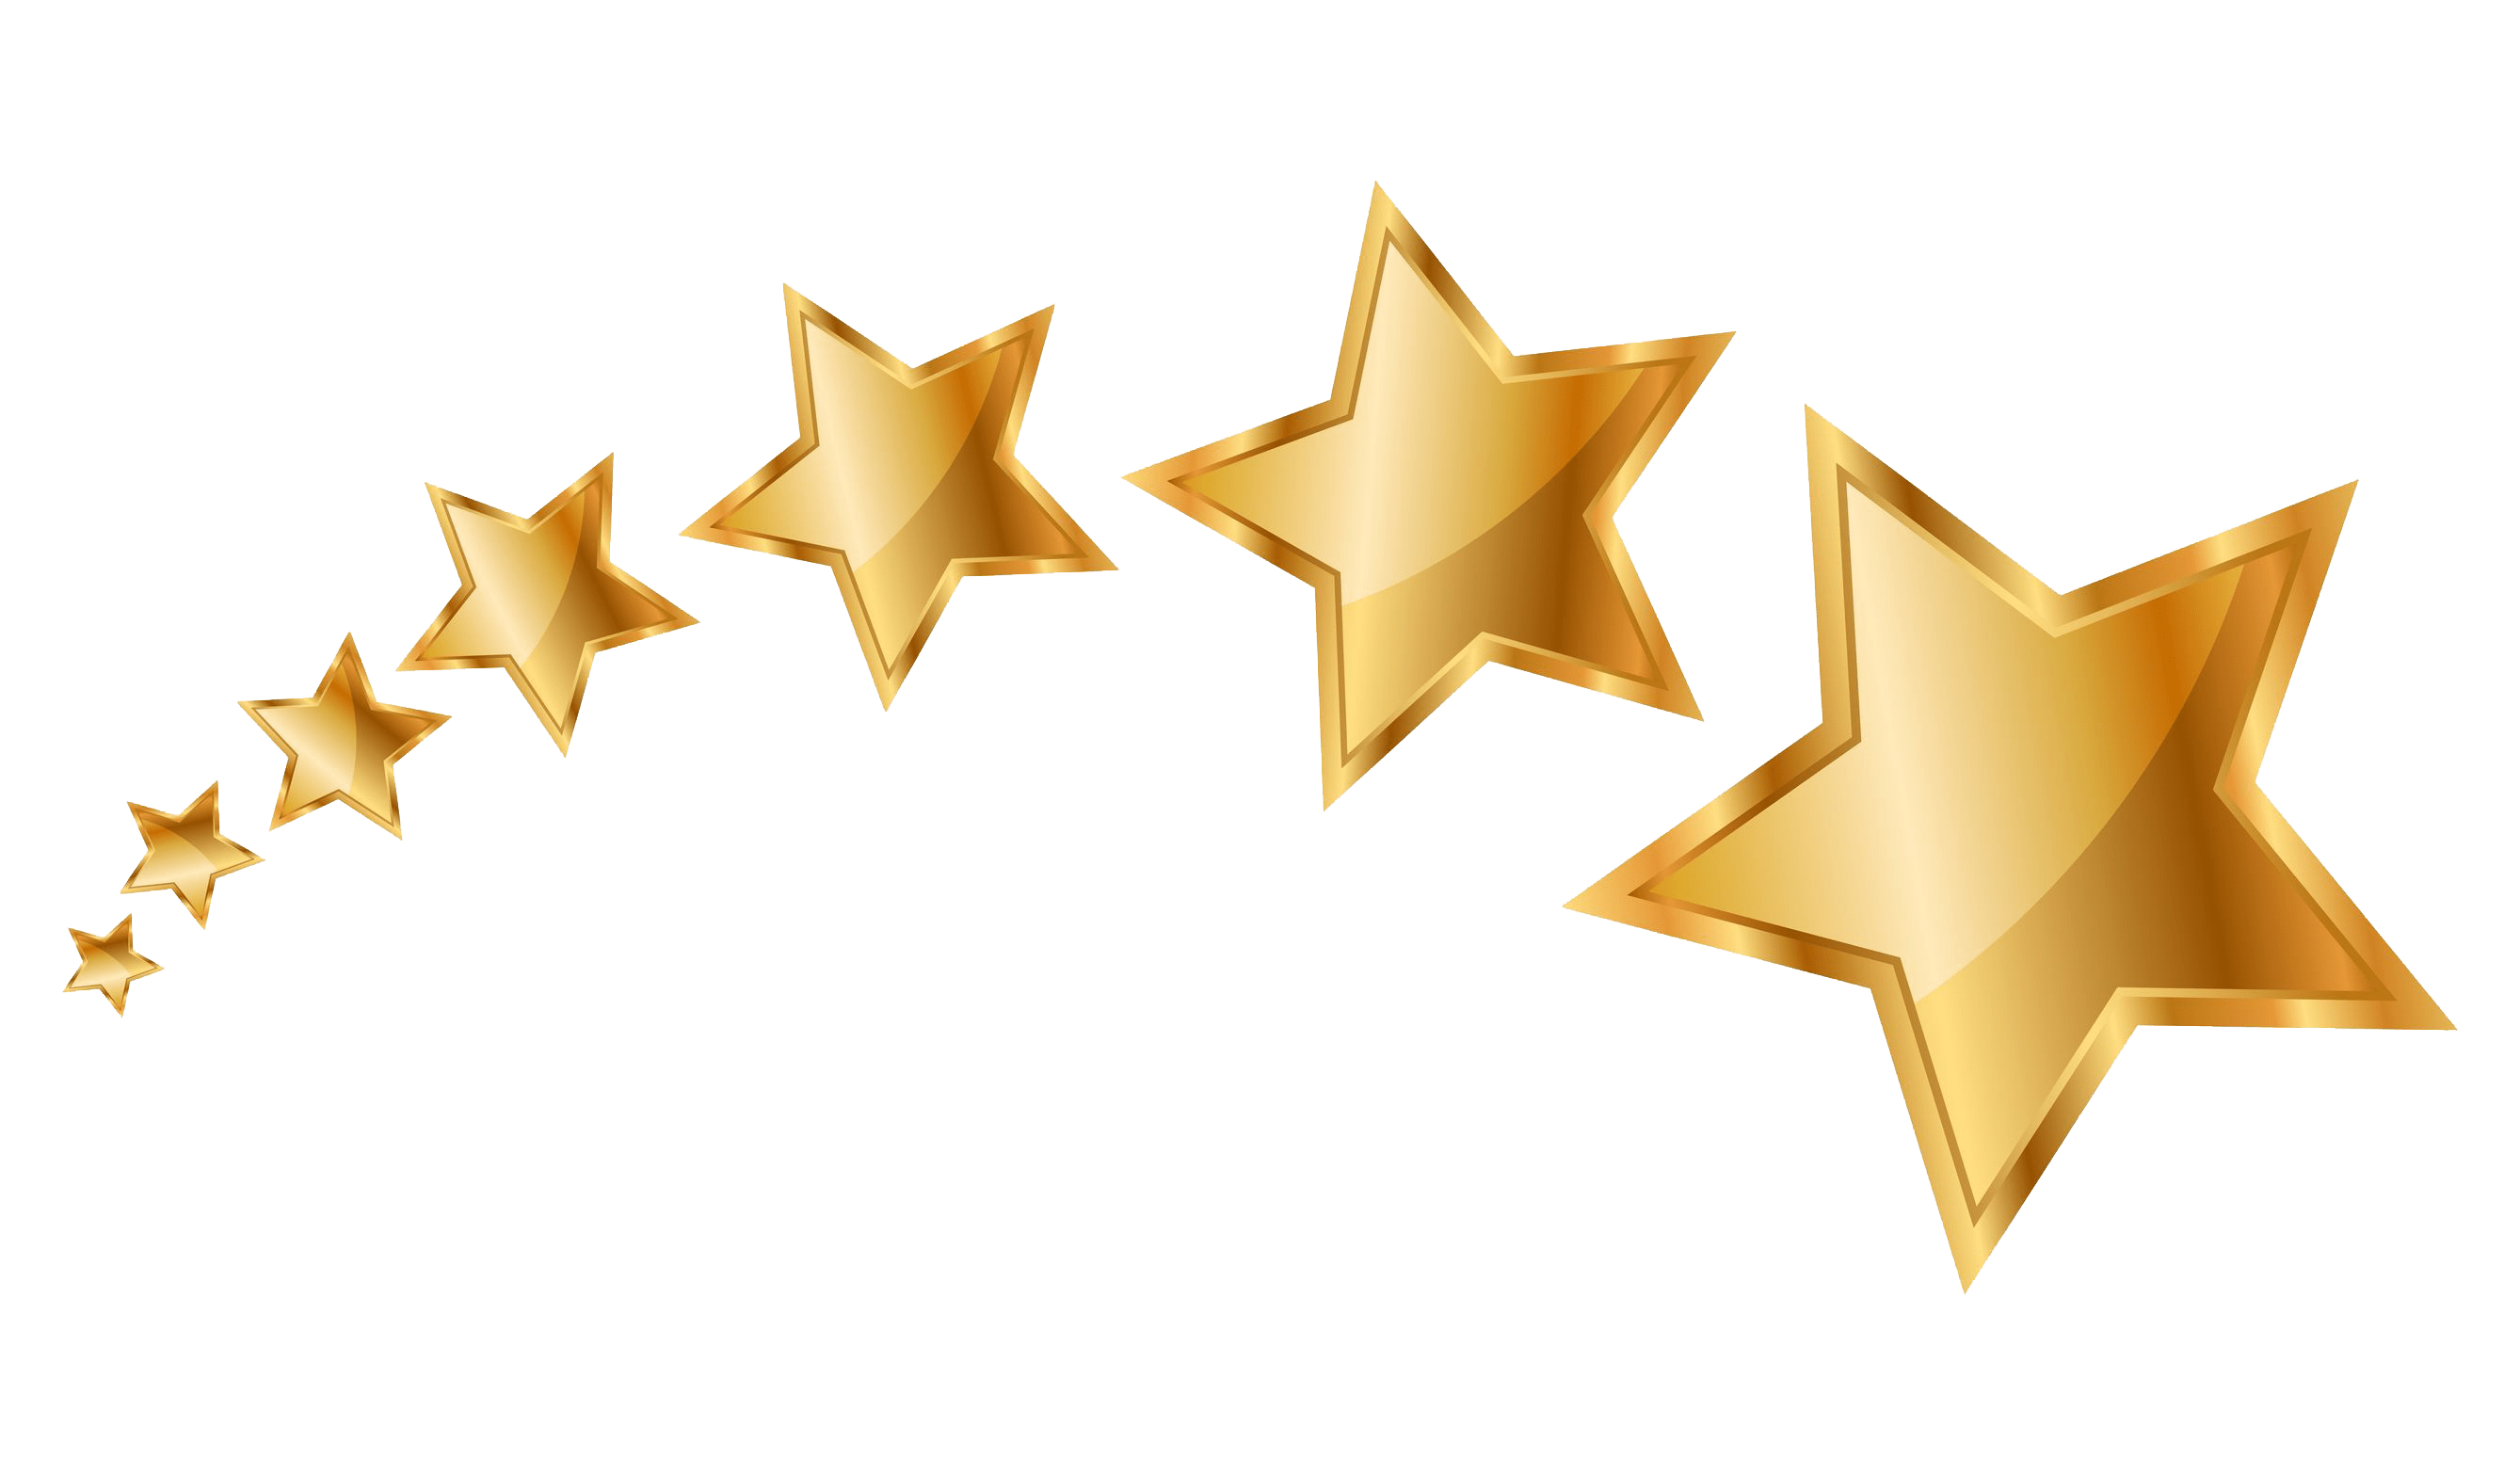 5 gold stars png. Voting transparent stickpng series